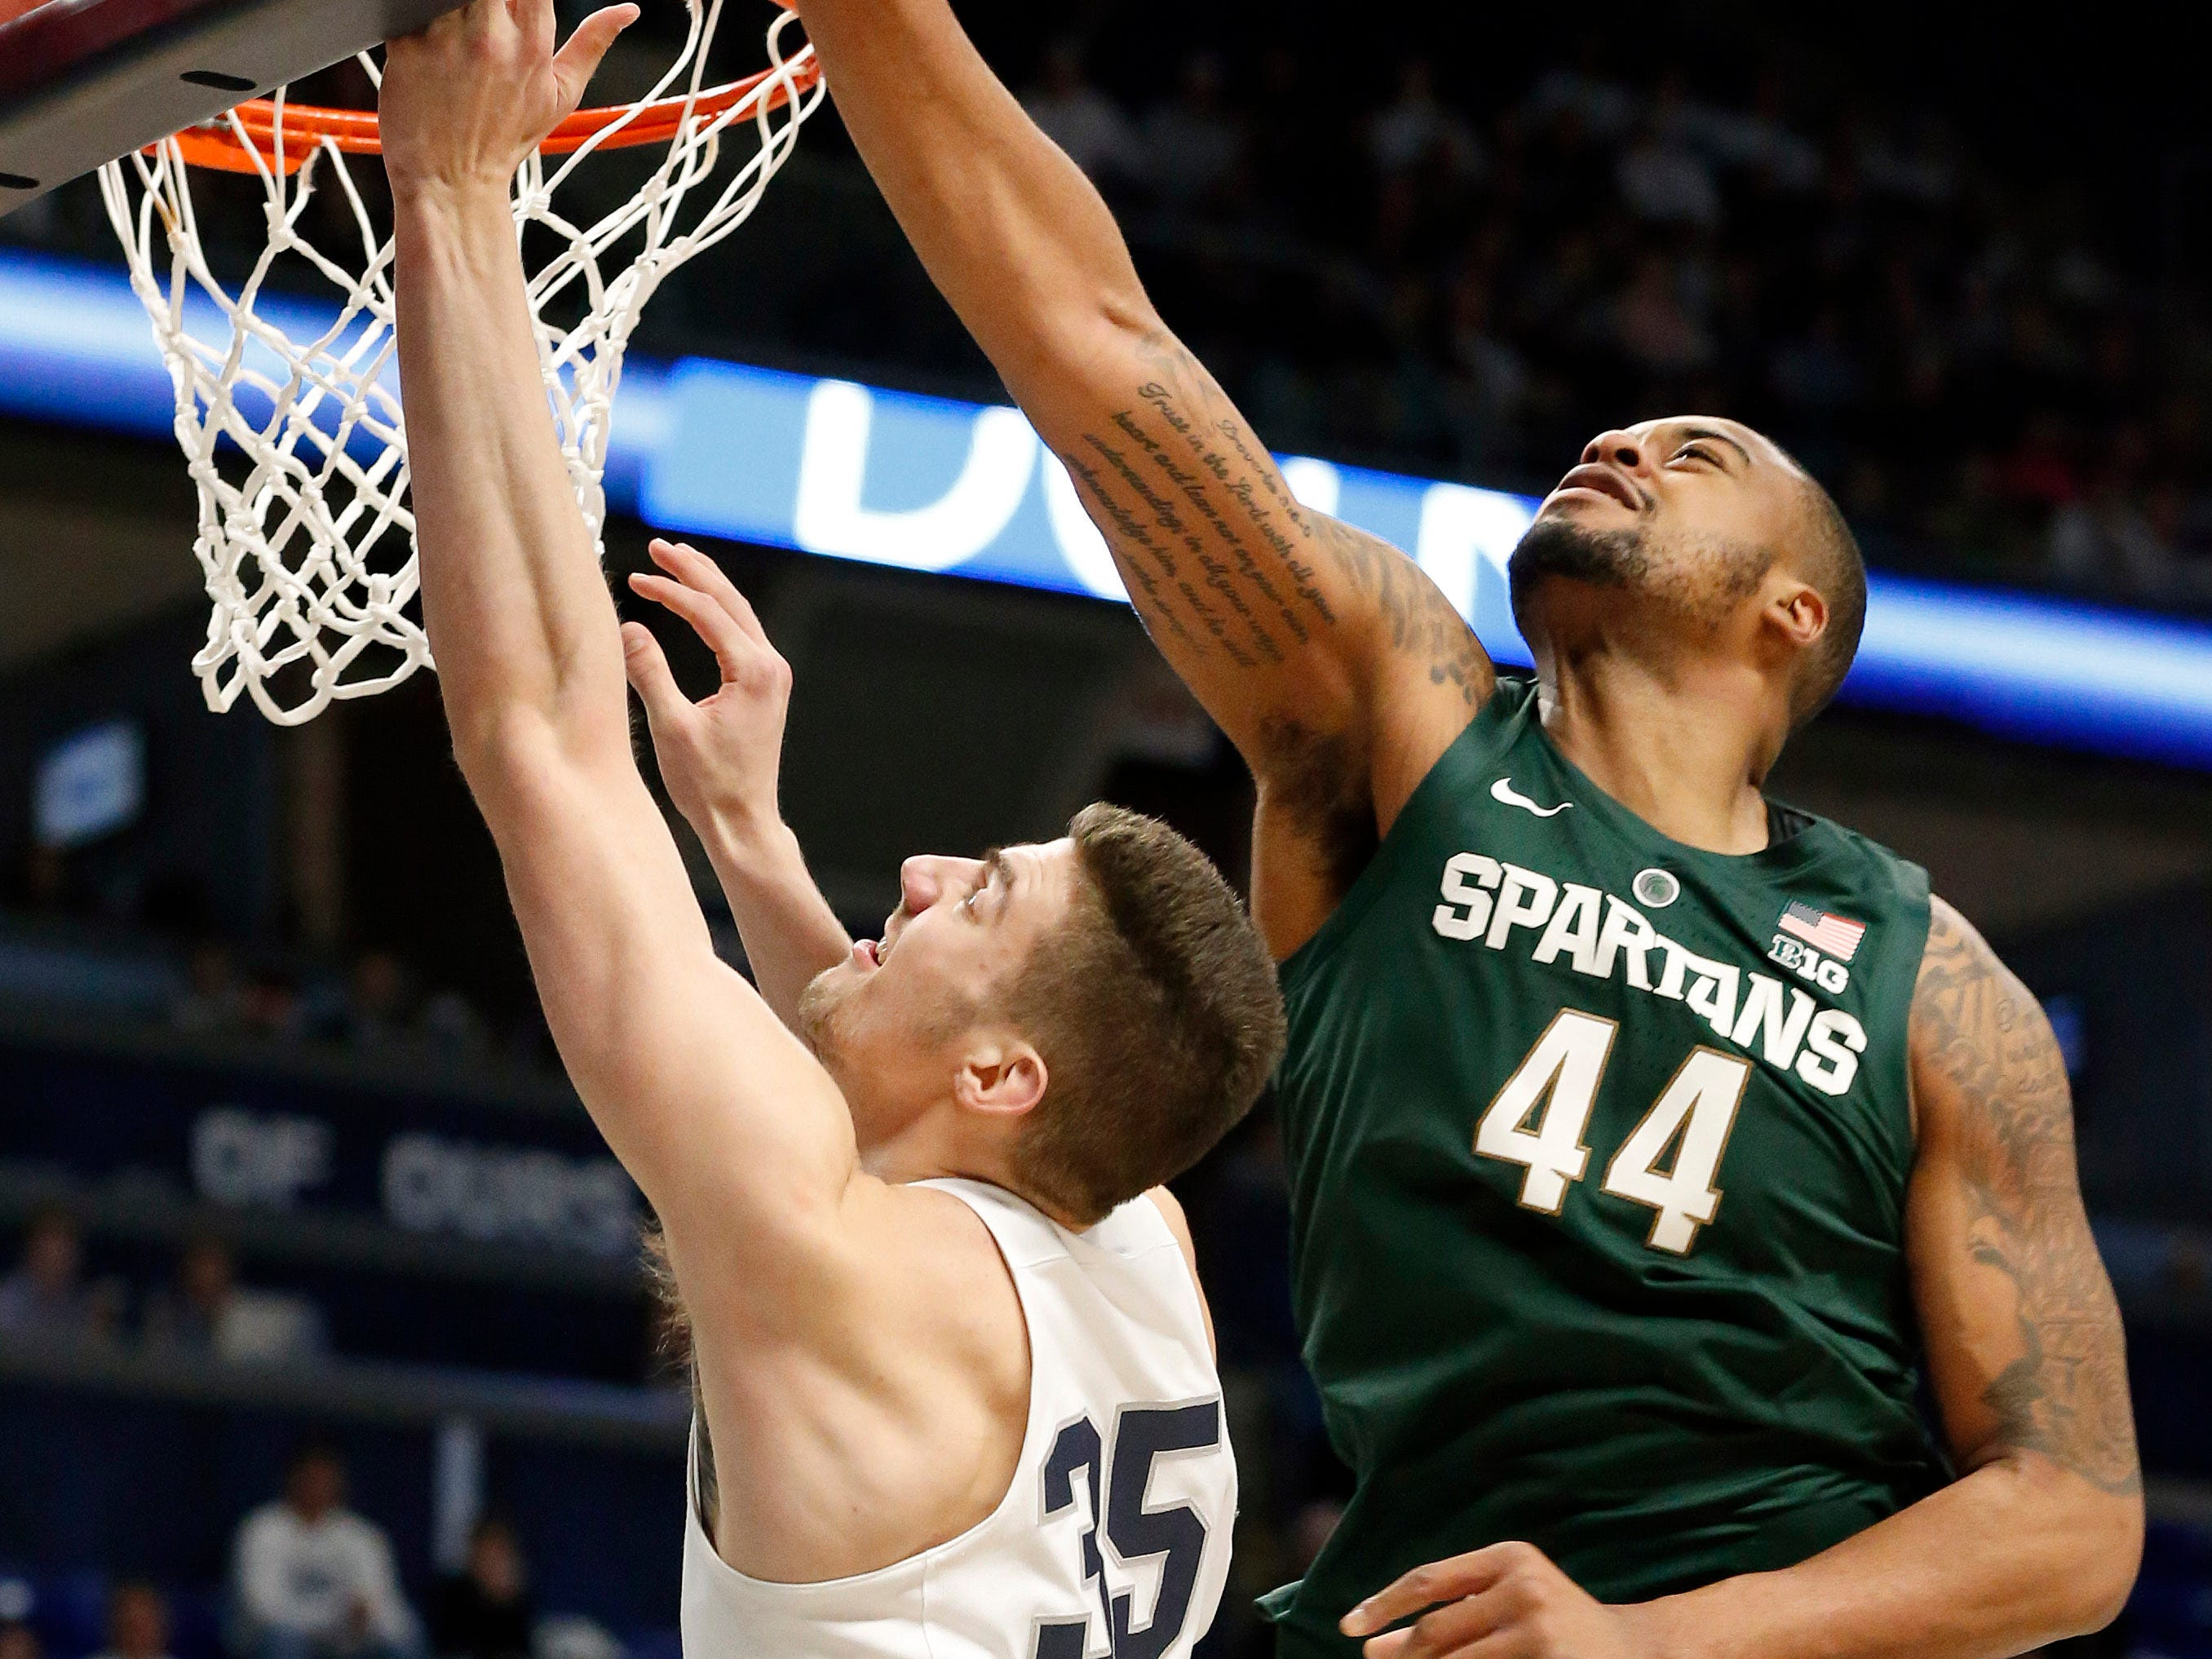 Michigan State's Nick Ward blocks a shot by Penn State's Trent Butrick during the second half in State College, Pa. Sunday, Jan. 13, 2019.